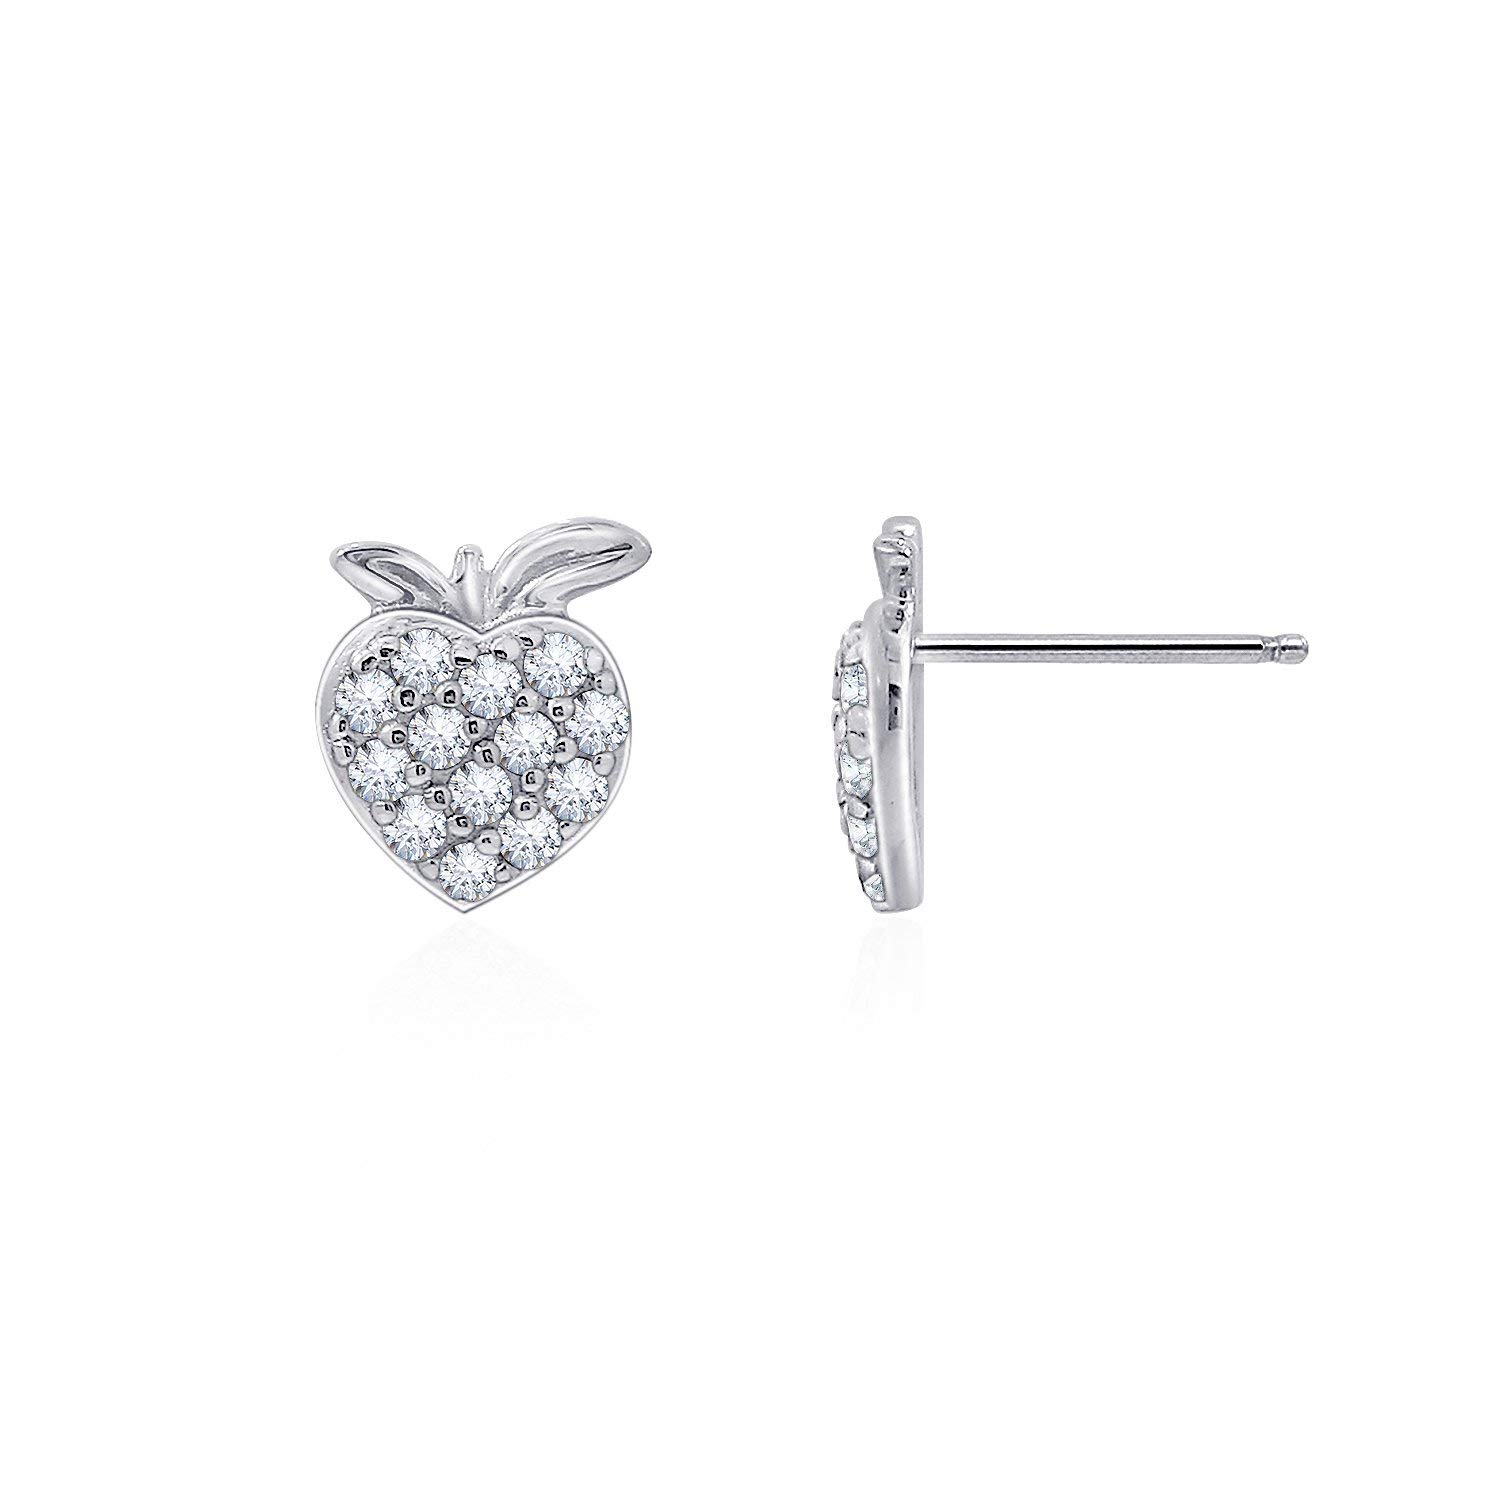 JADMIRE Fruits Collection Sterling Silver Swarovski Zirconia Strawberry Stud Earrings